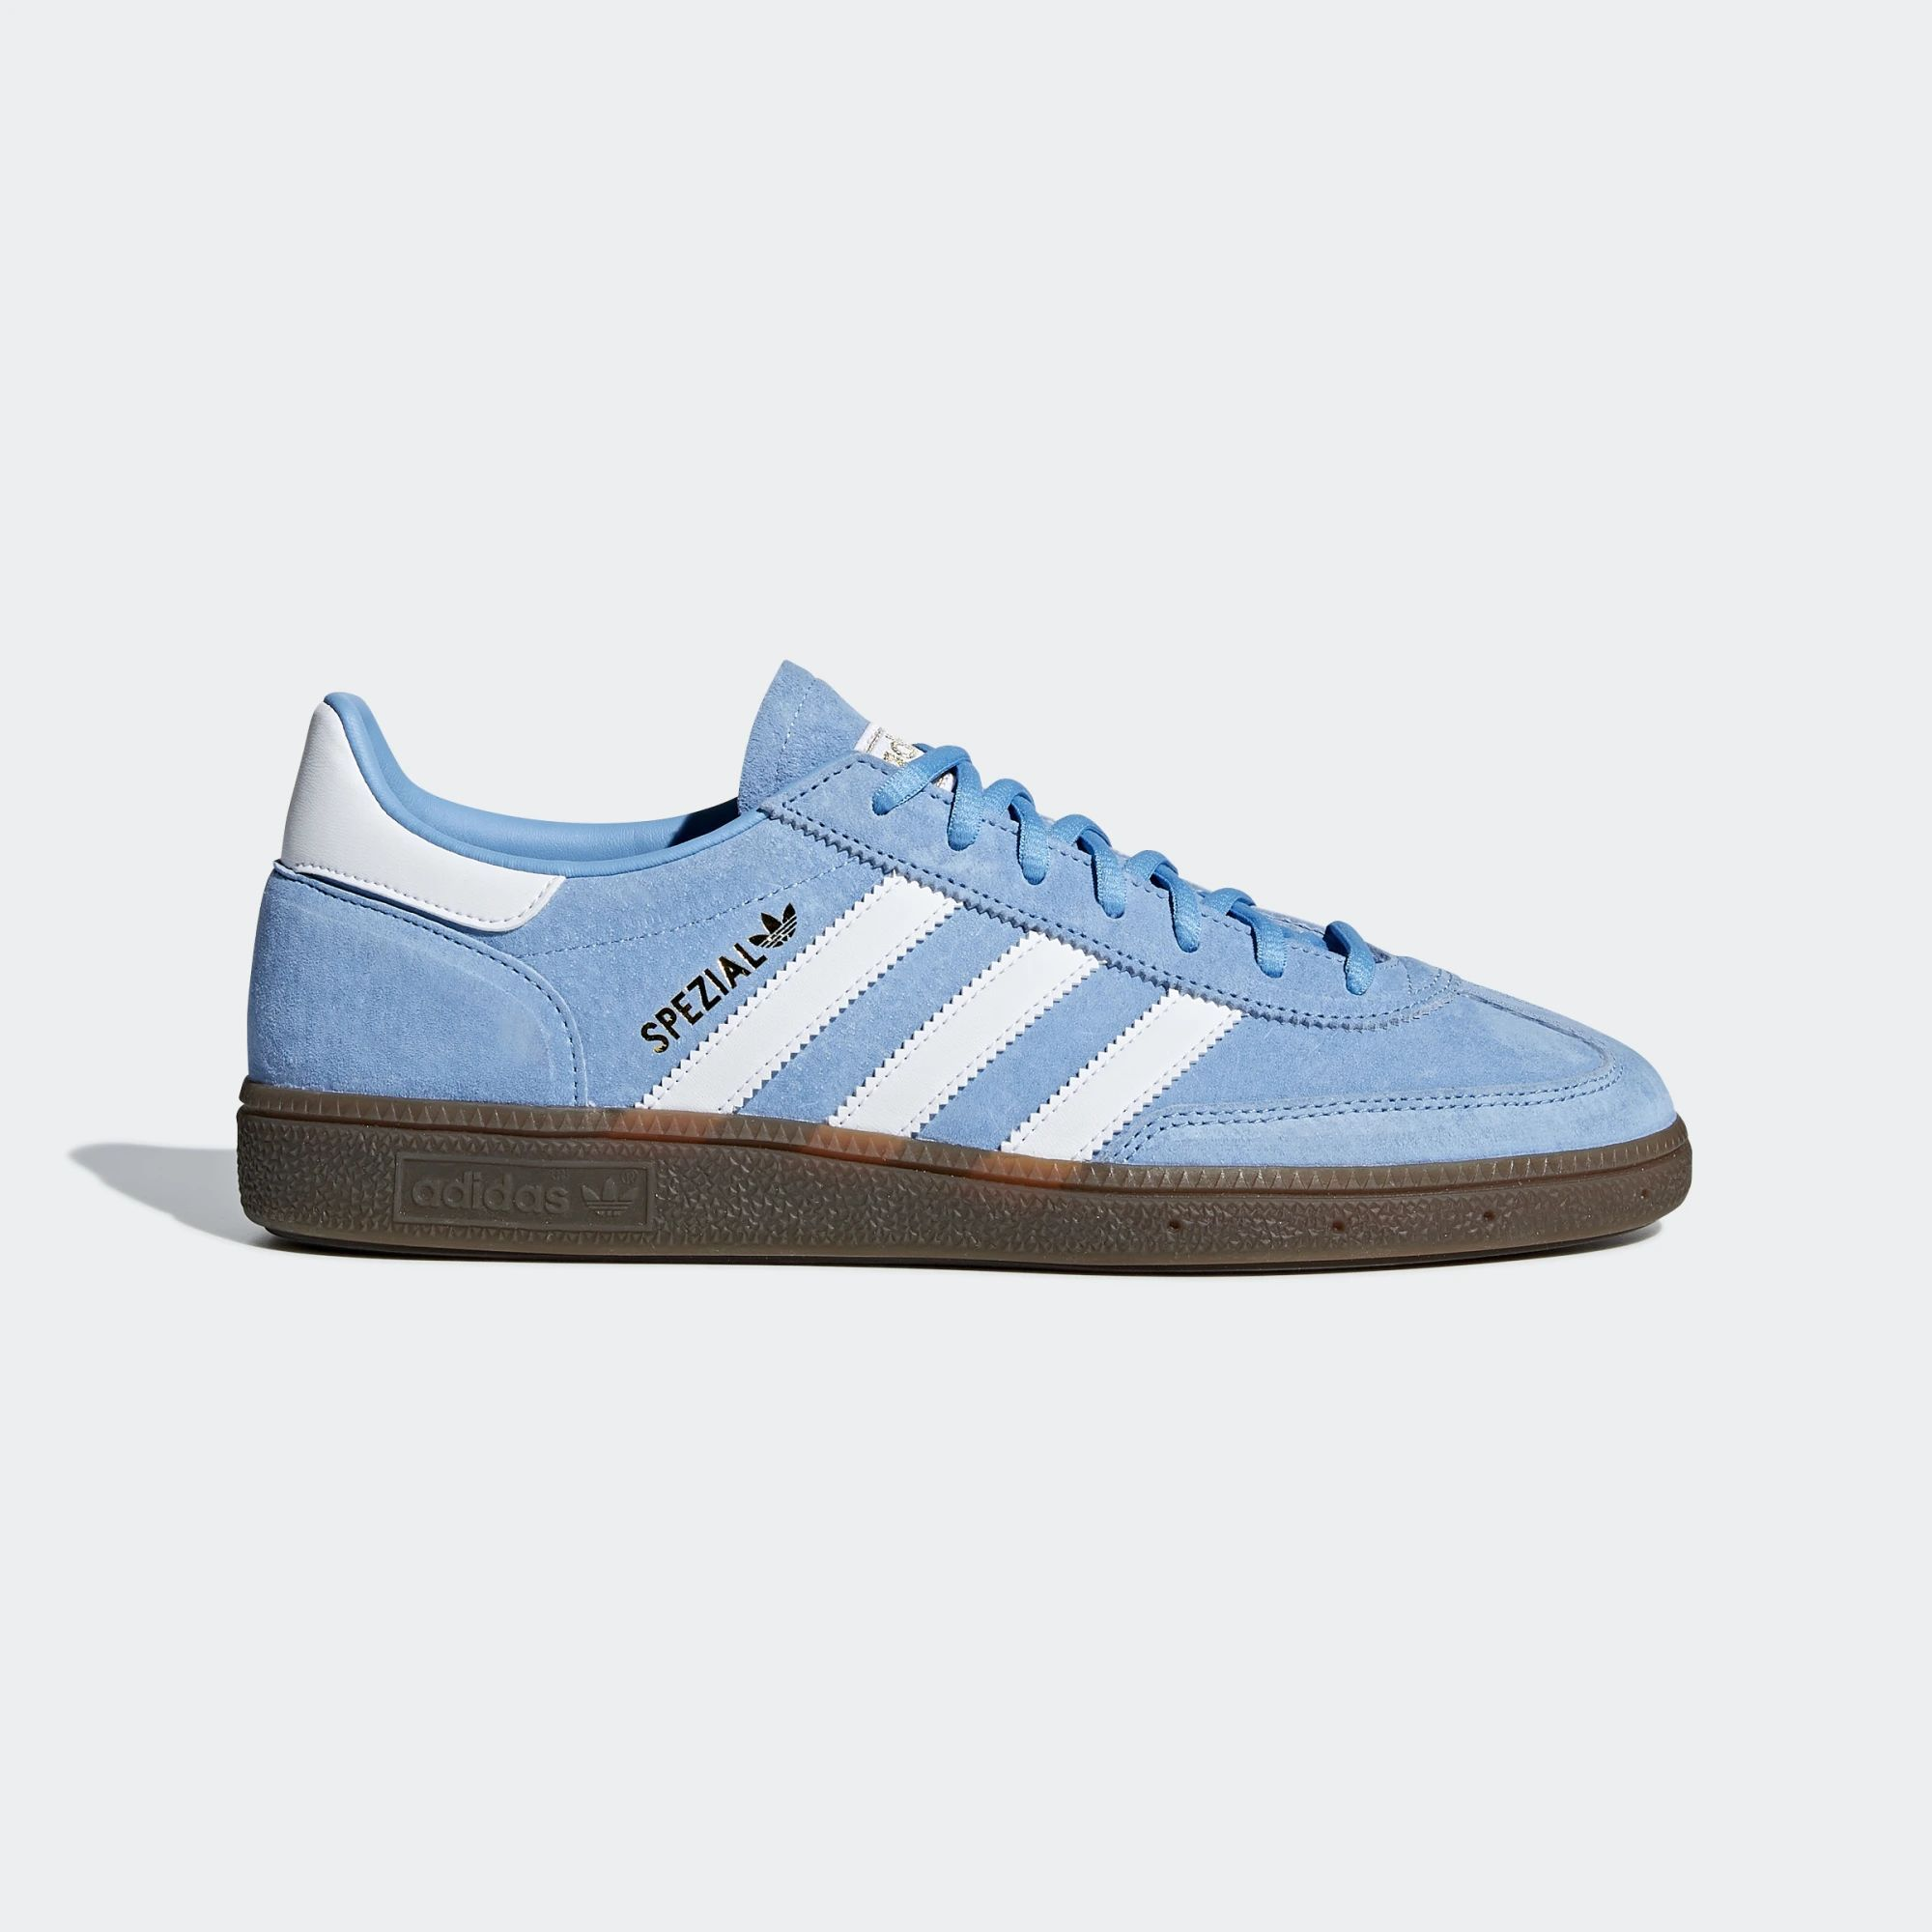 innovative design 1510c 8155b Adidas Handball Spezial Shoes - Light Blue  Ftwr White  Gum